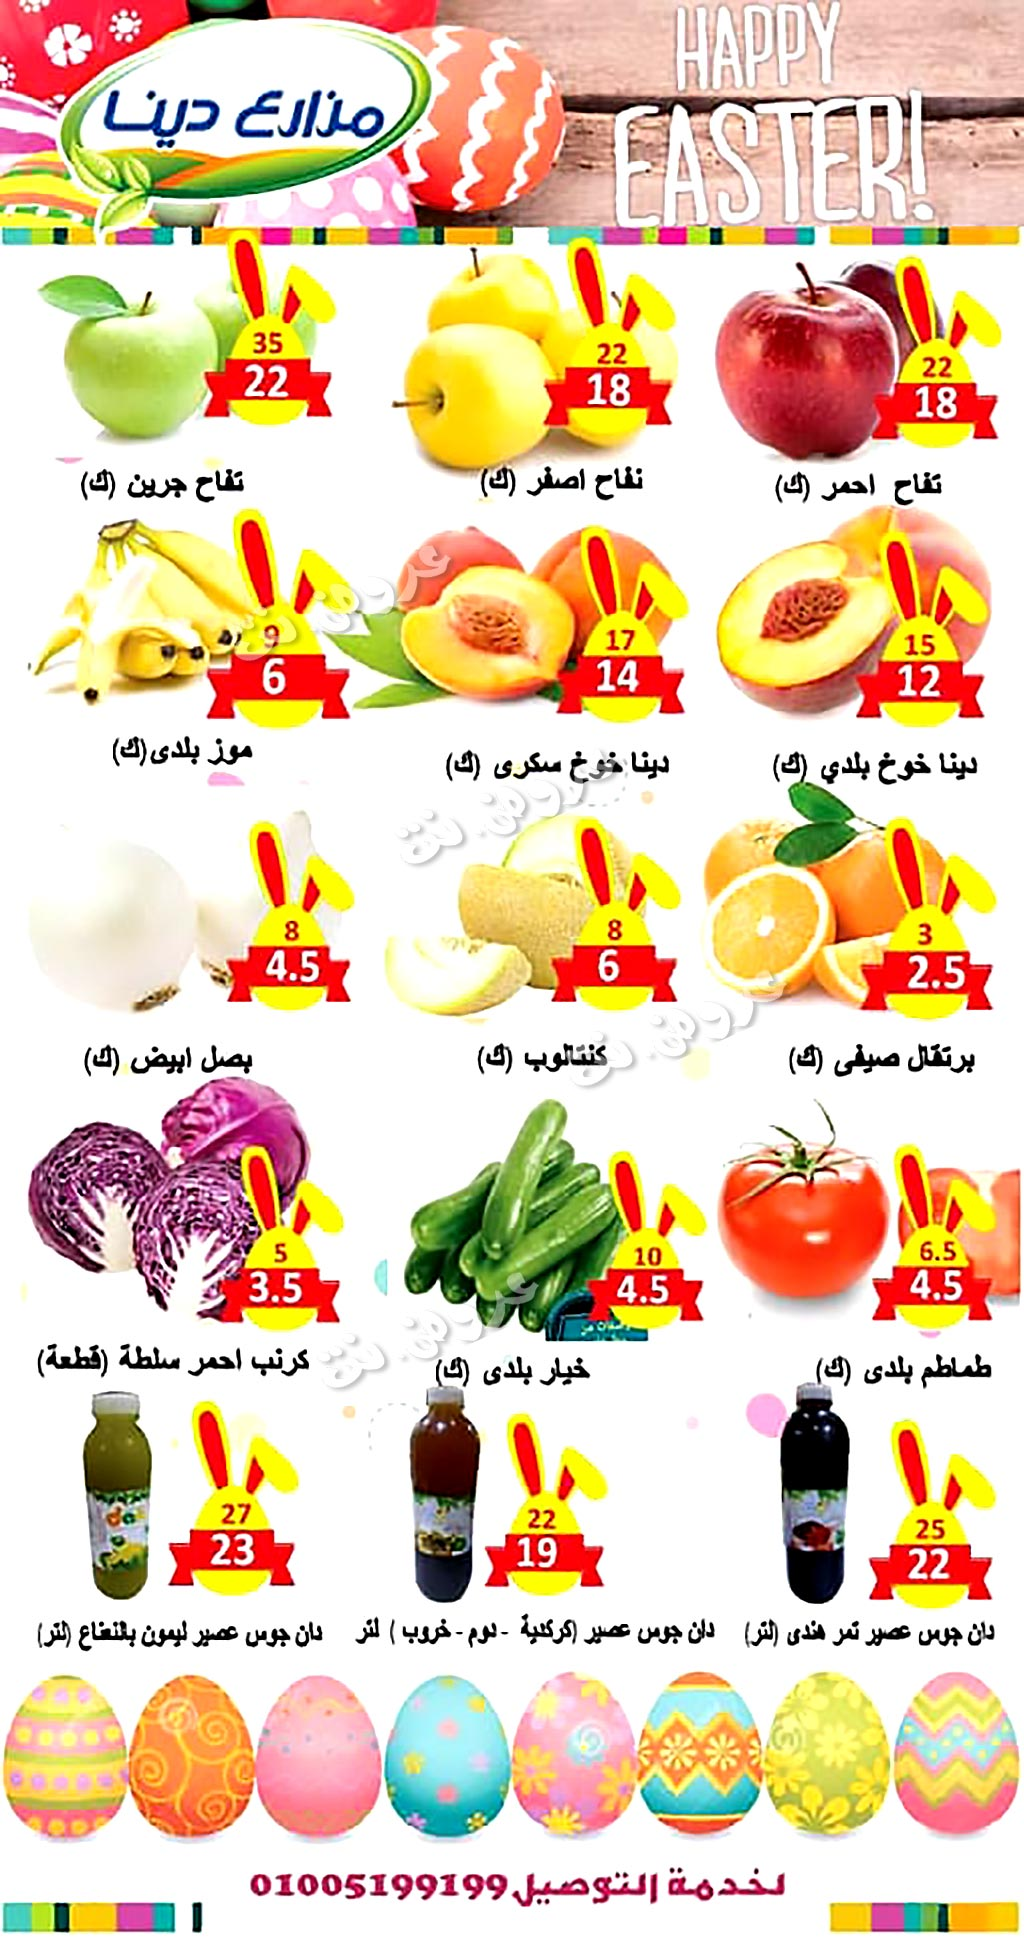 dina-farms offers from 18apr to 4may 2019 page number 2 عروض مزارع دينا من 18 إبريل حتى 4 مايو 2019 صفحة رقم 2